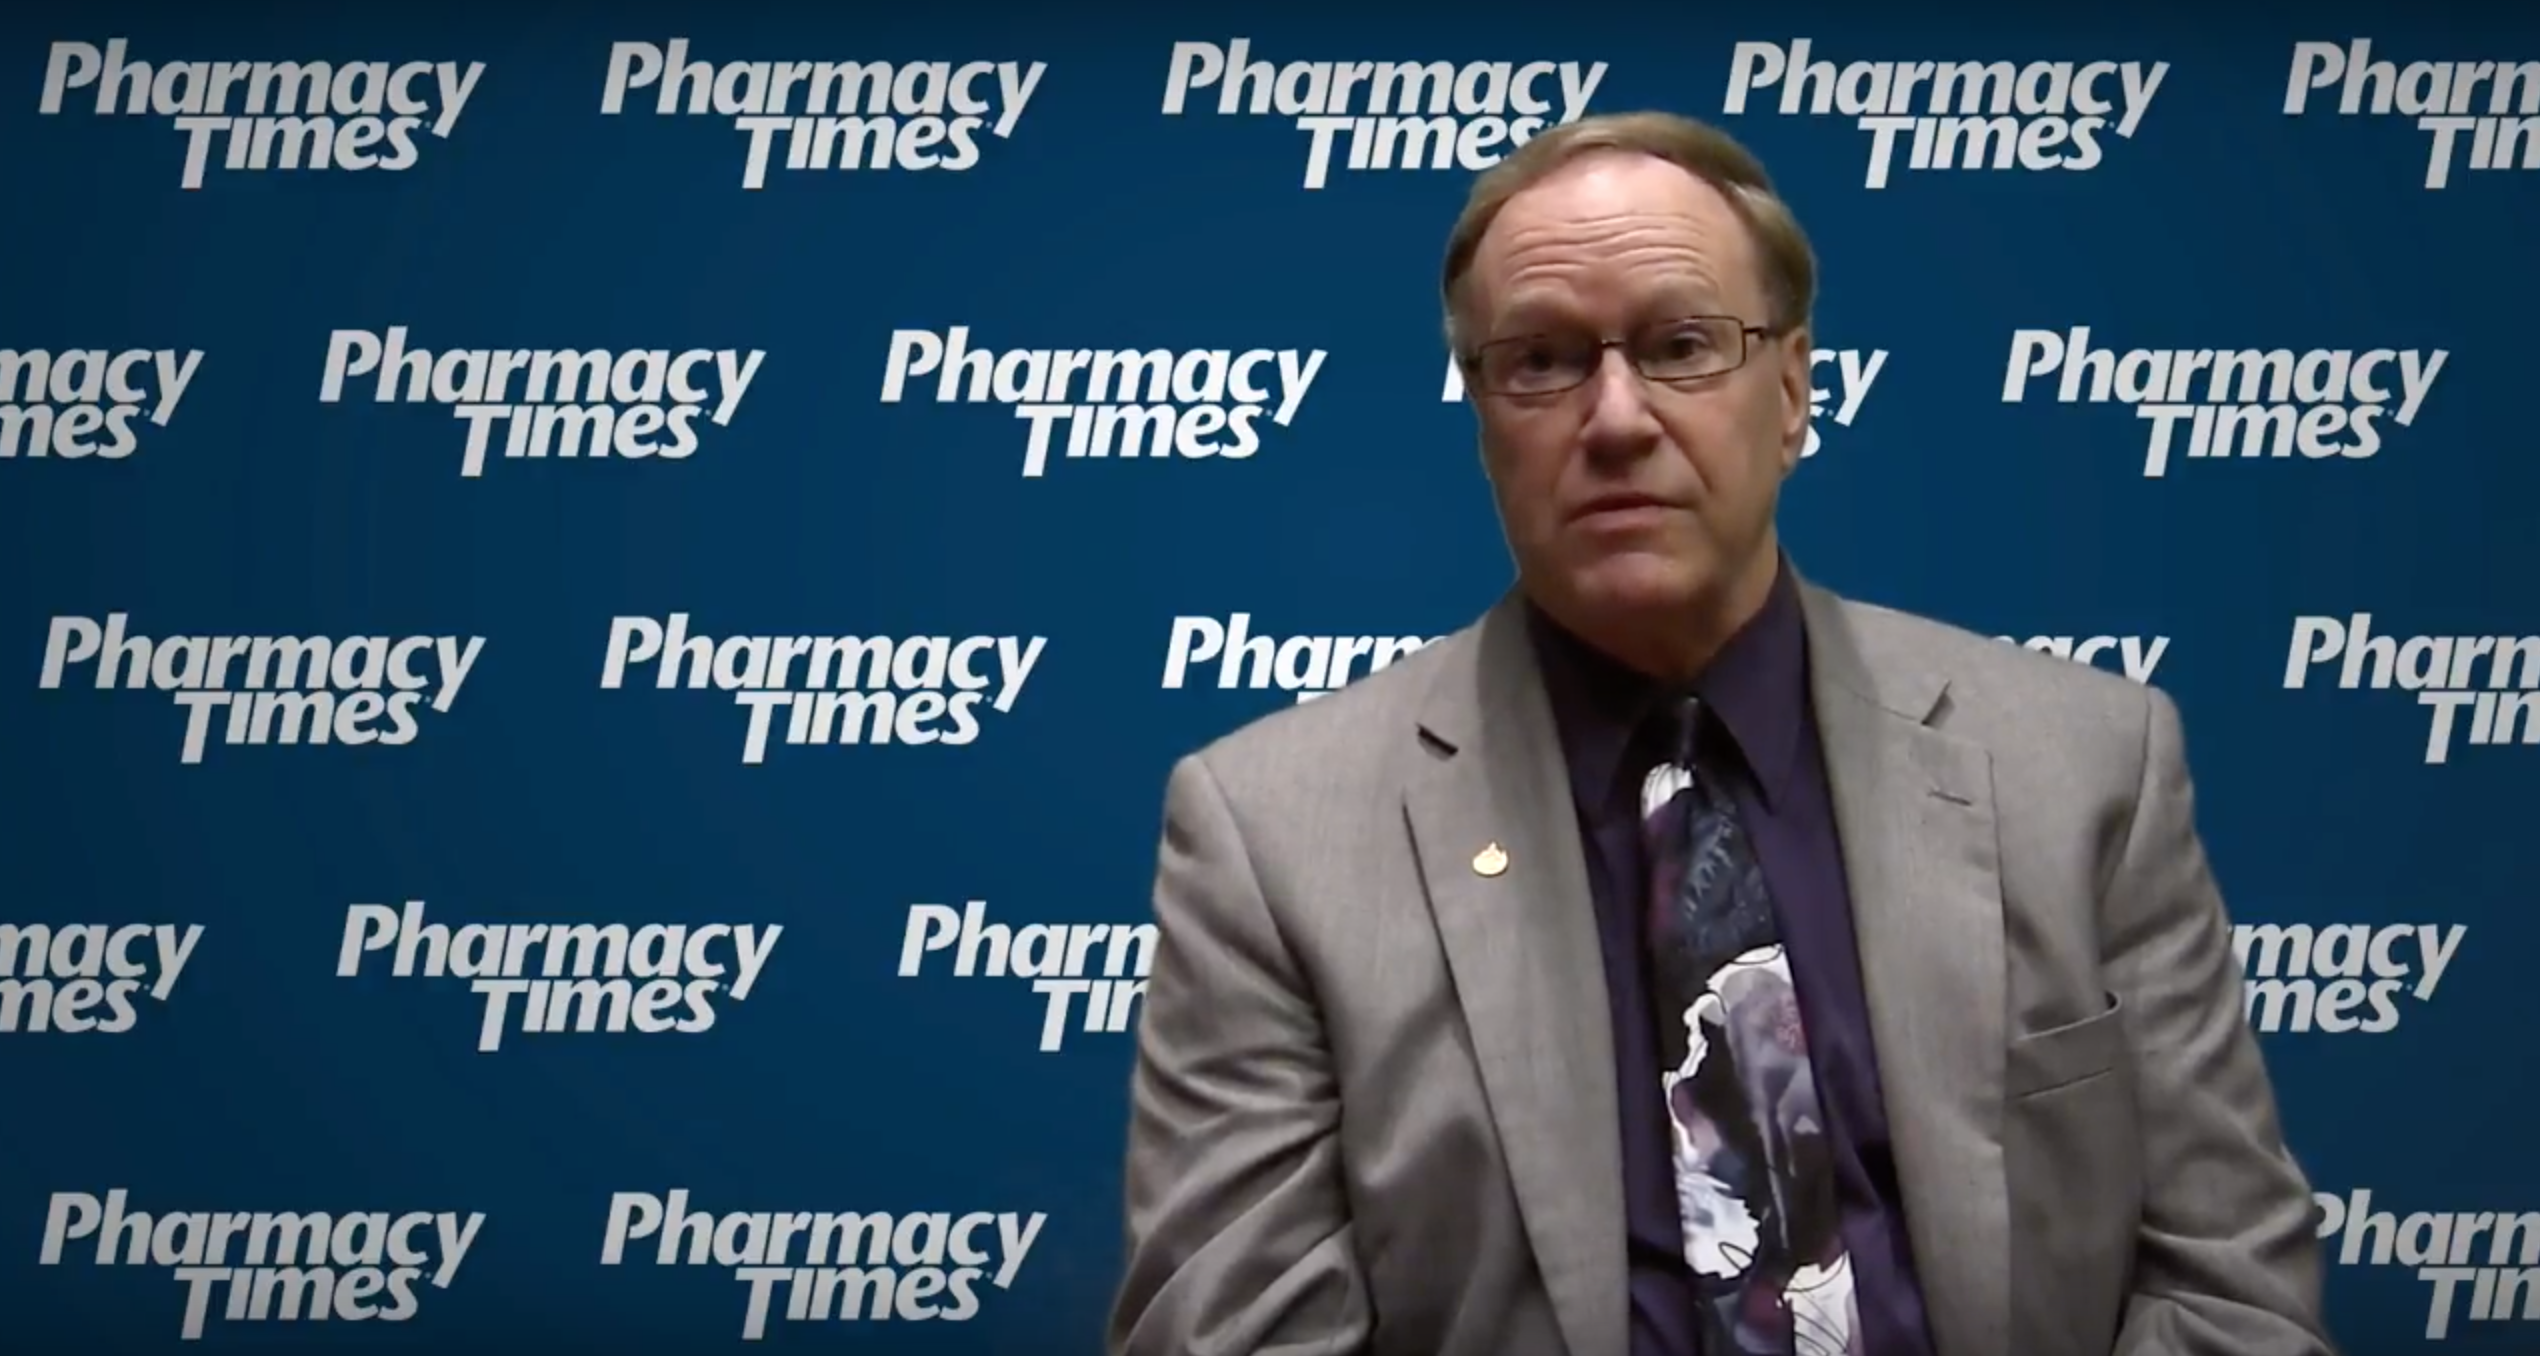 What Advice Do You Have for Pharmacists Regarding the Current Opioid Crisis?